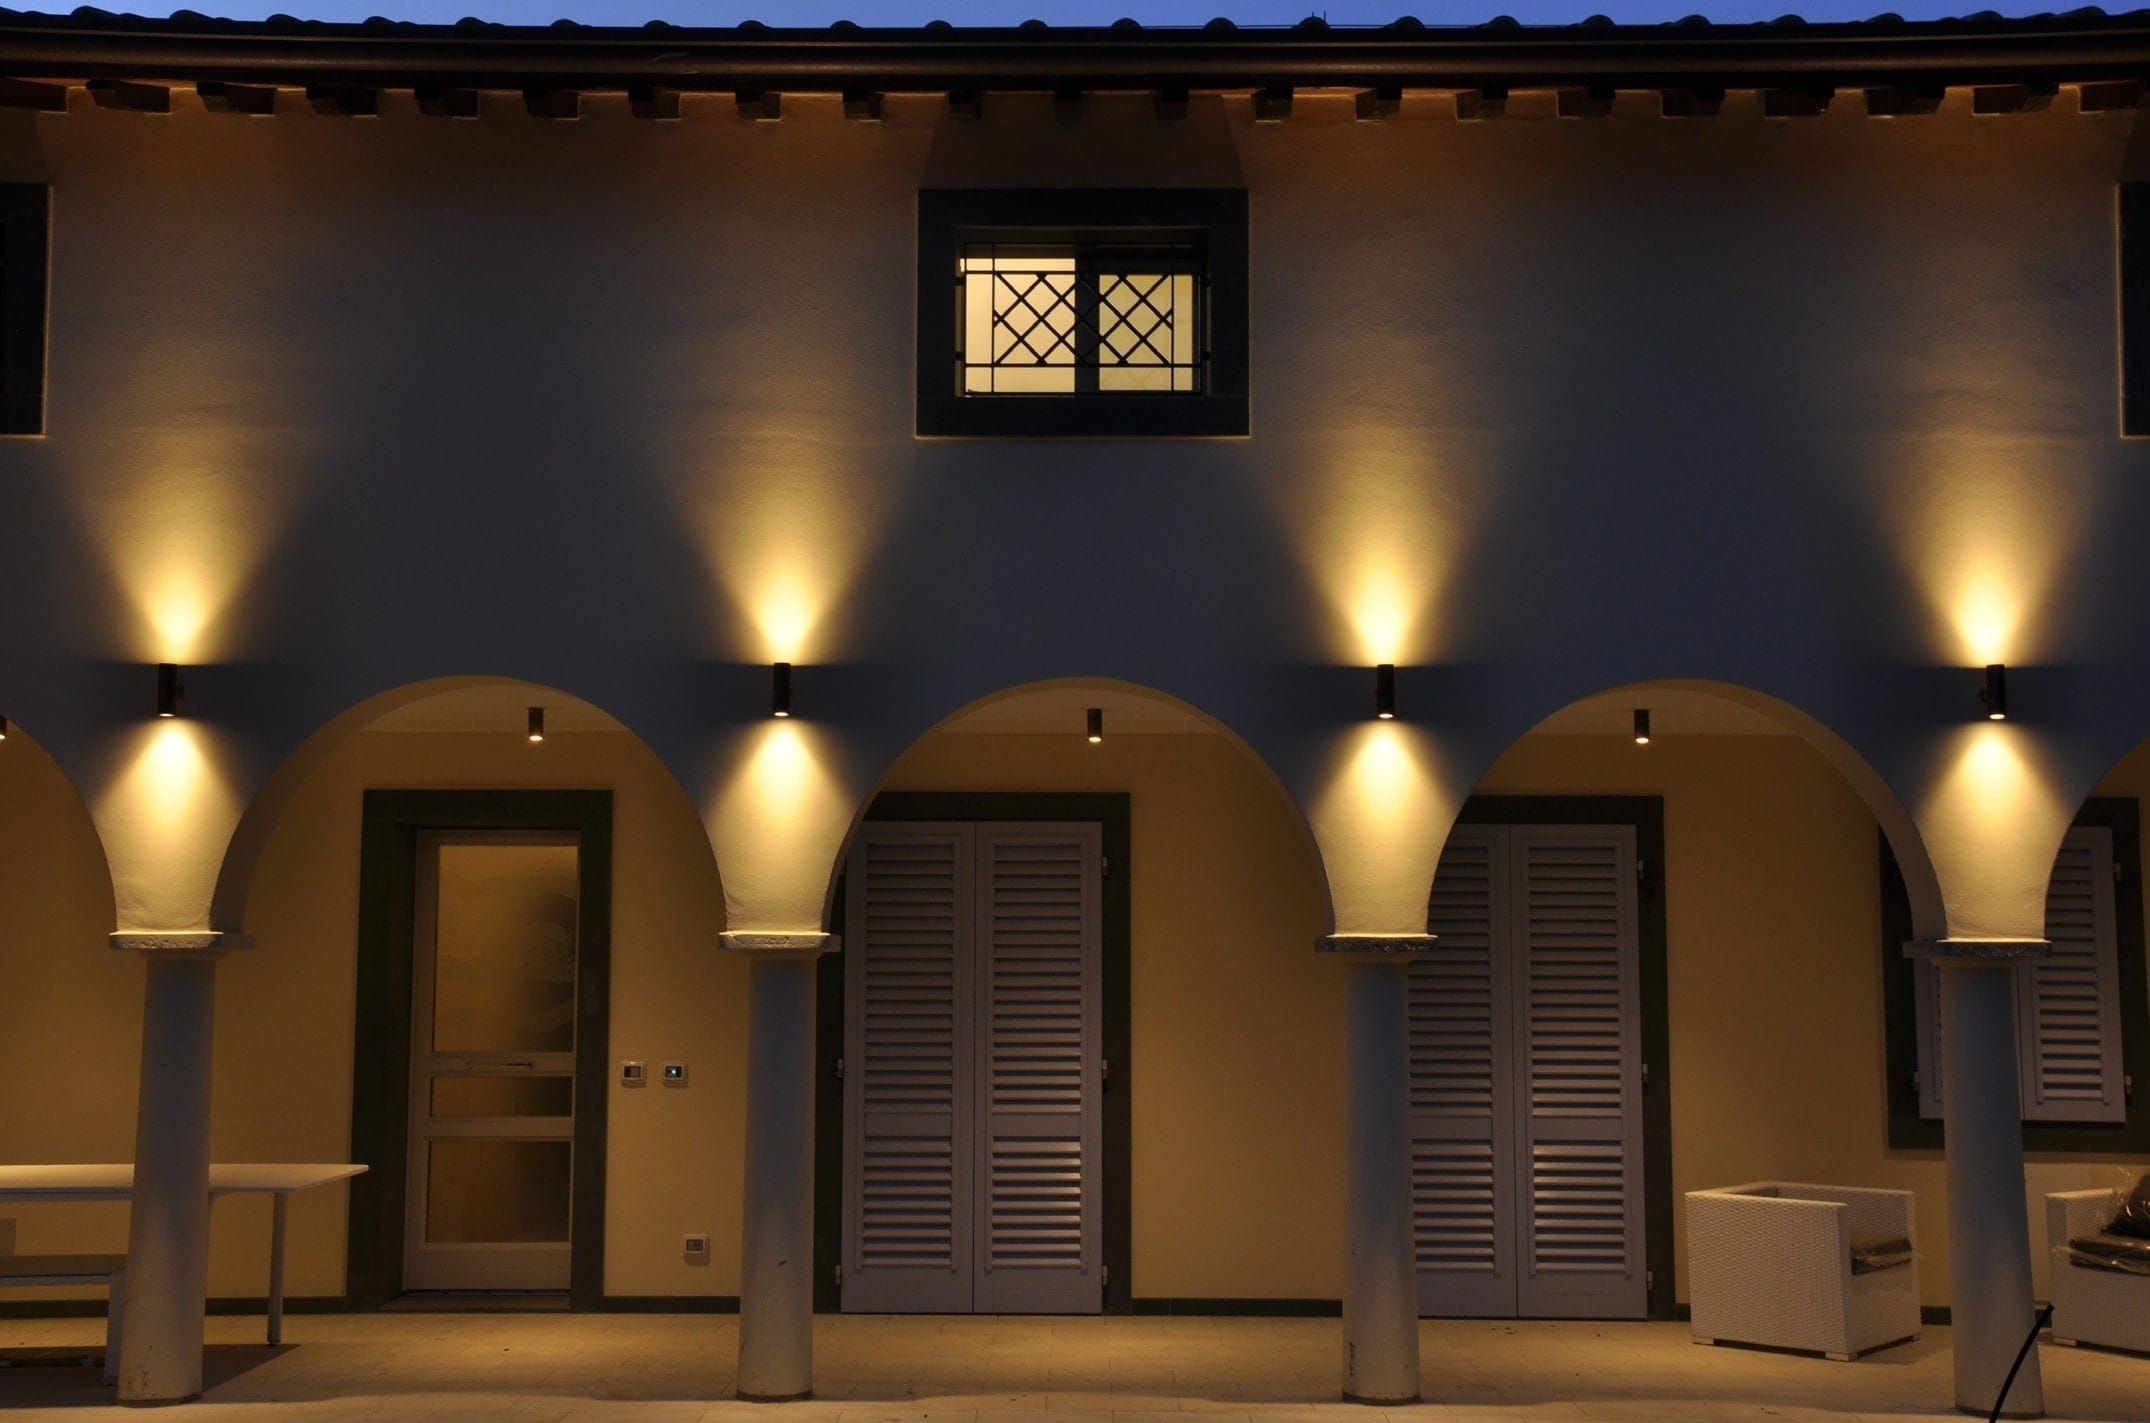 15 Collection of Outdoor Wall Sconce Up-Down Lighting